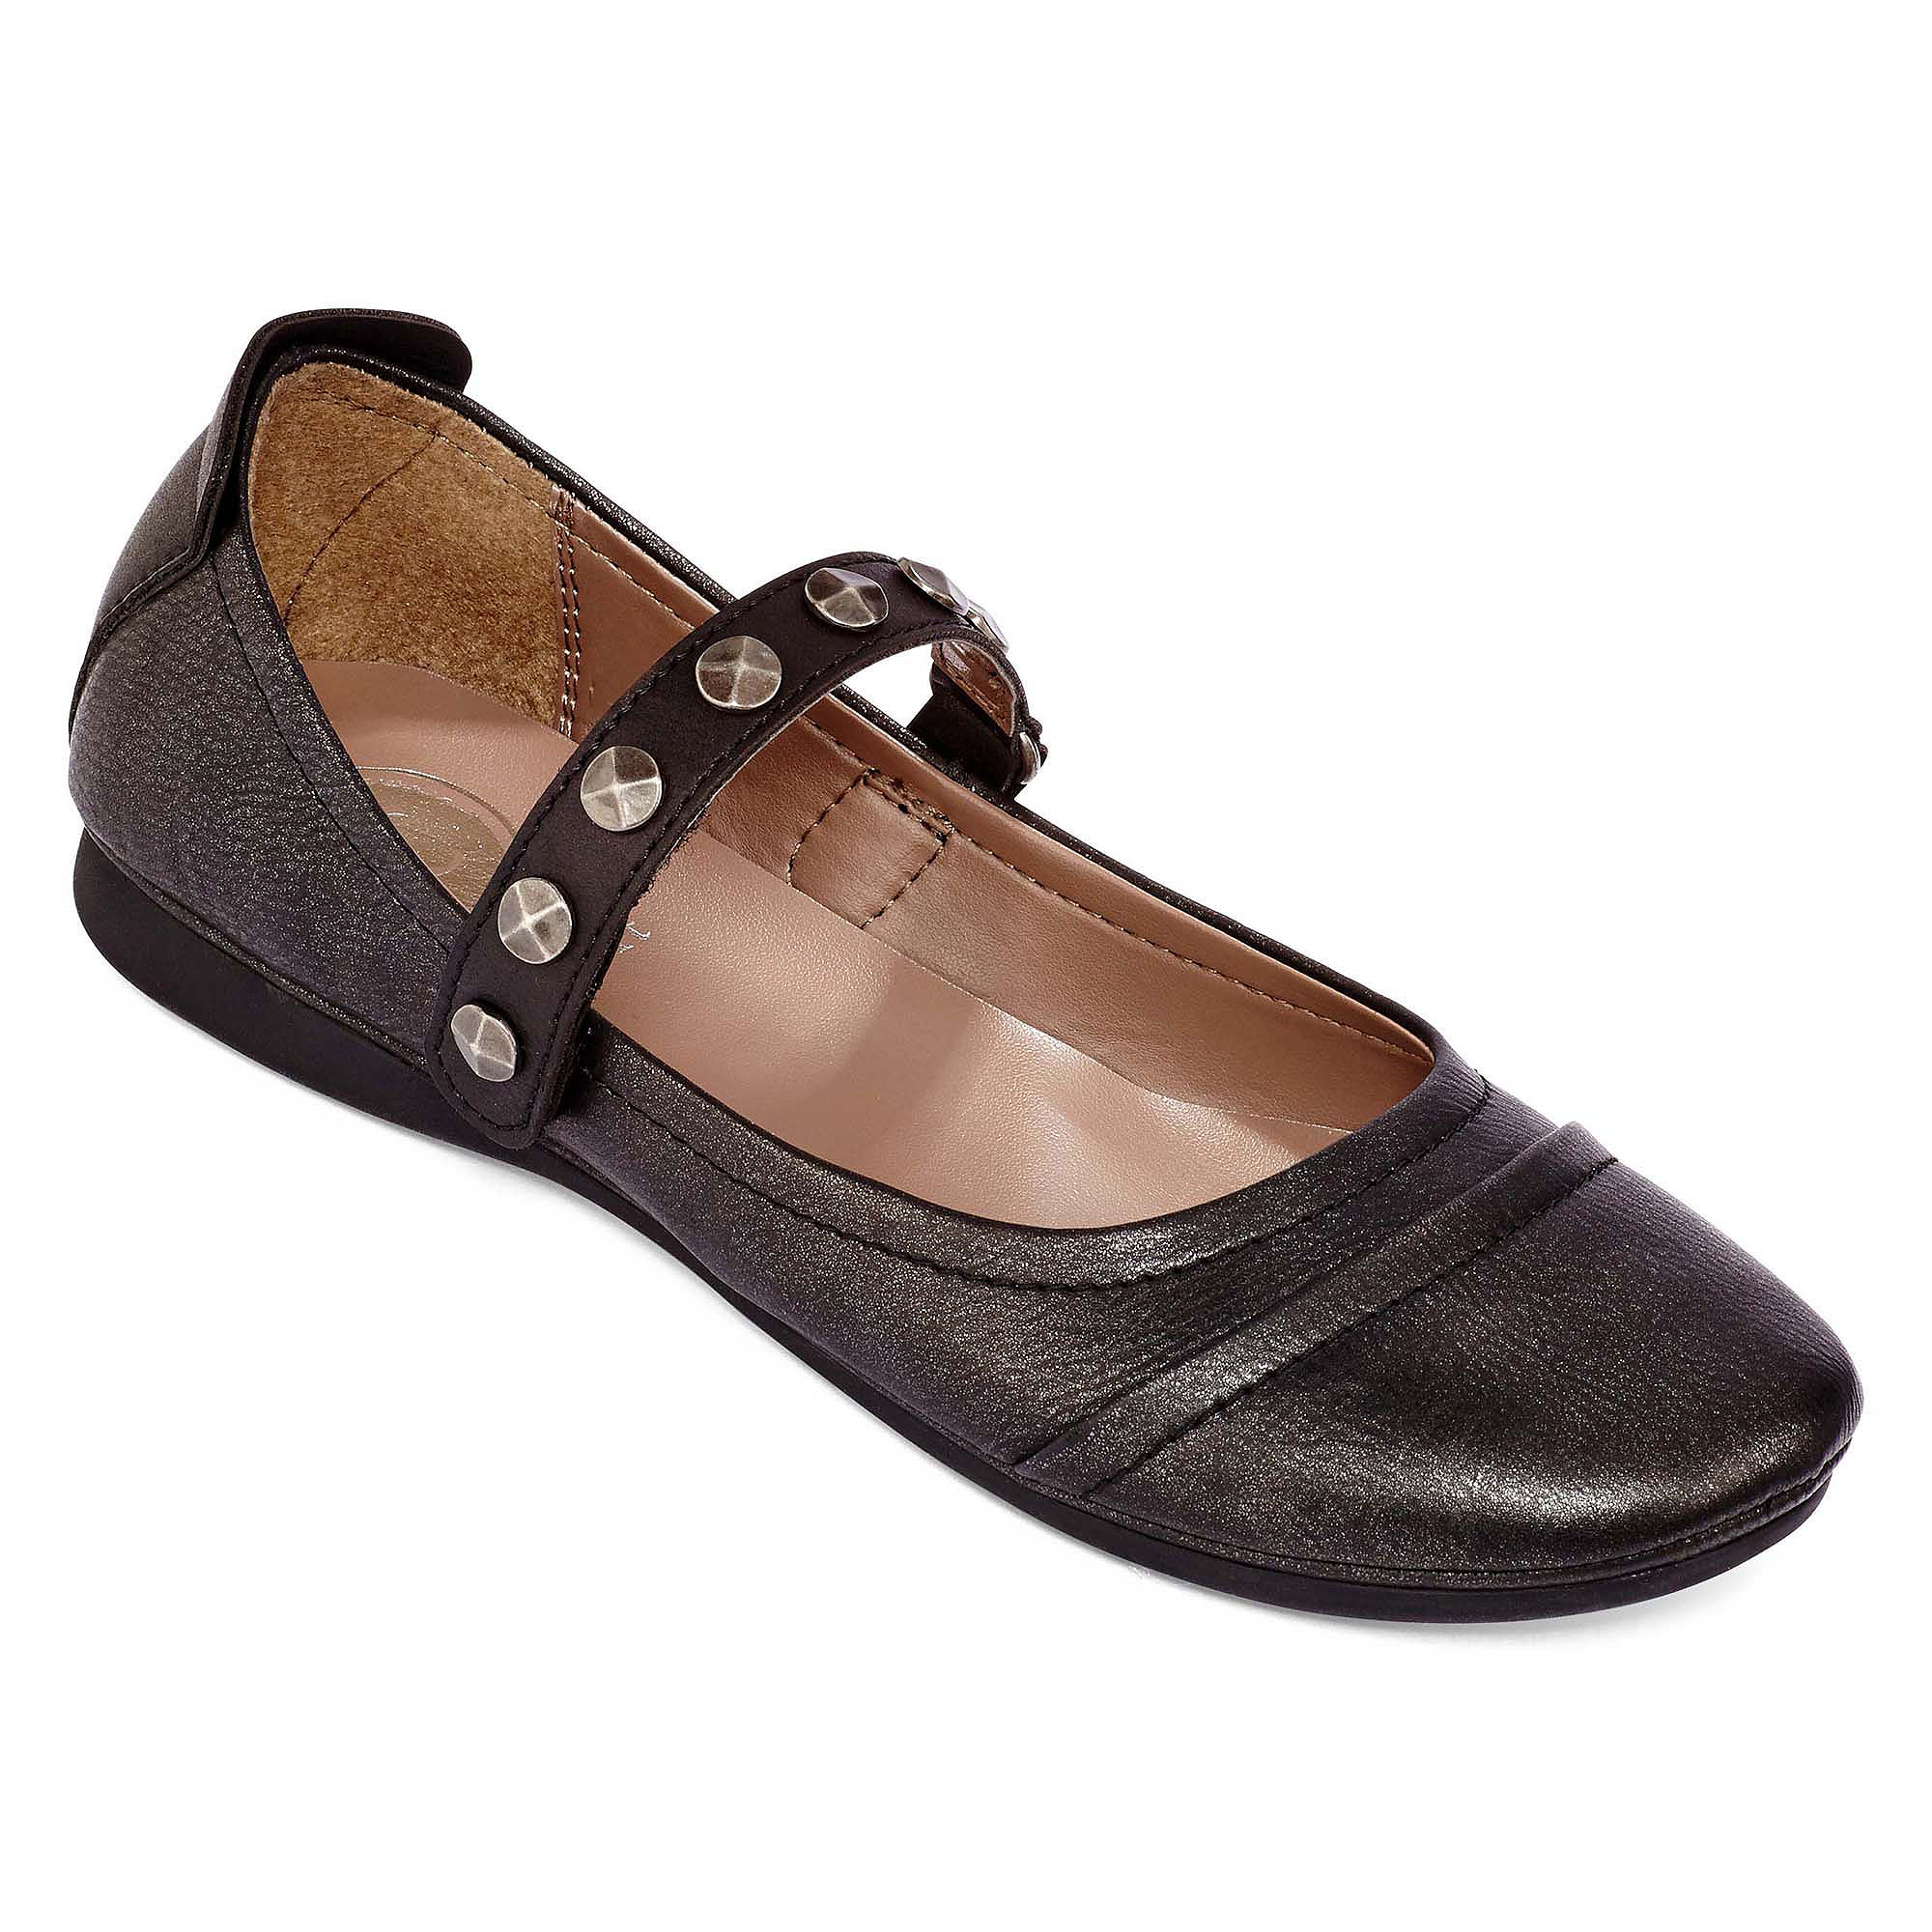 Jcpenney Strictly Comfort Shoes Search